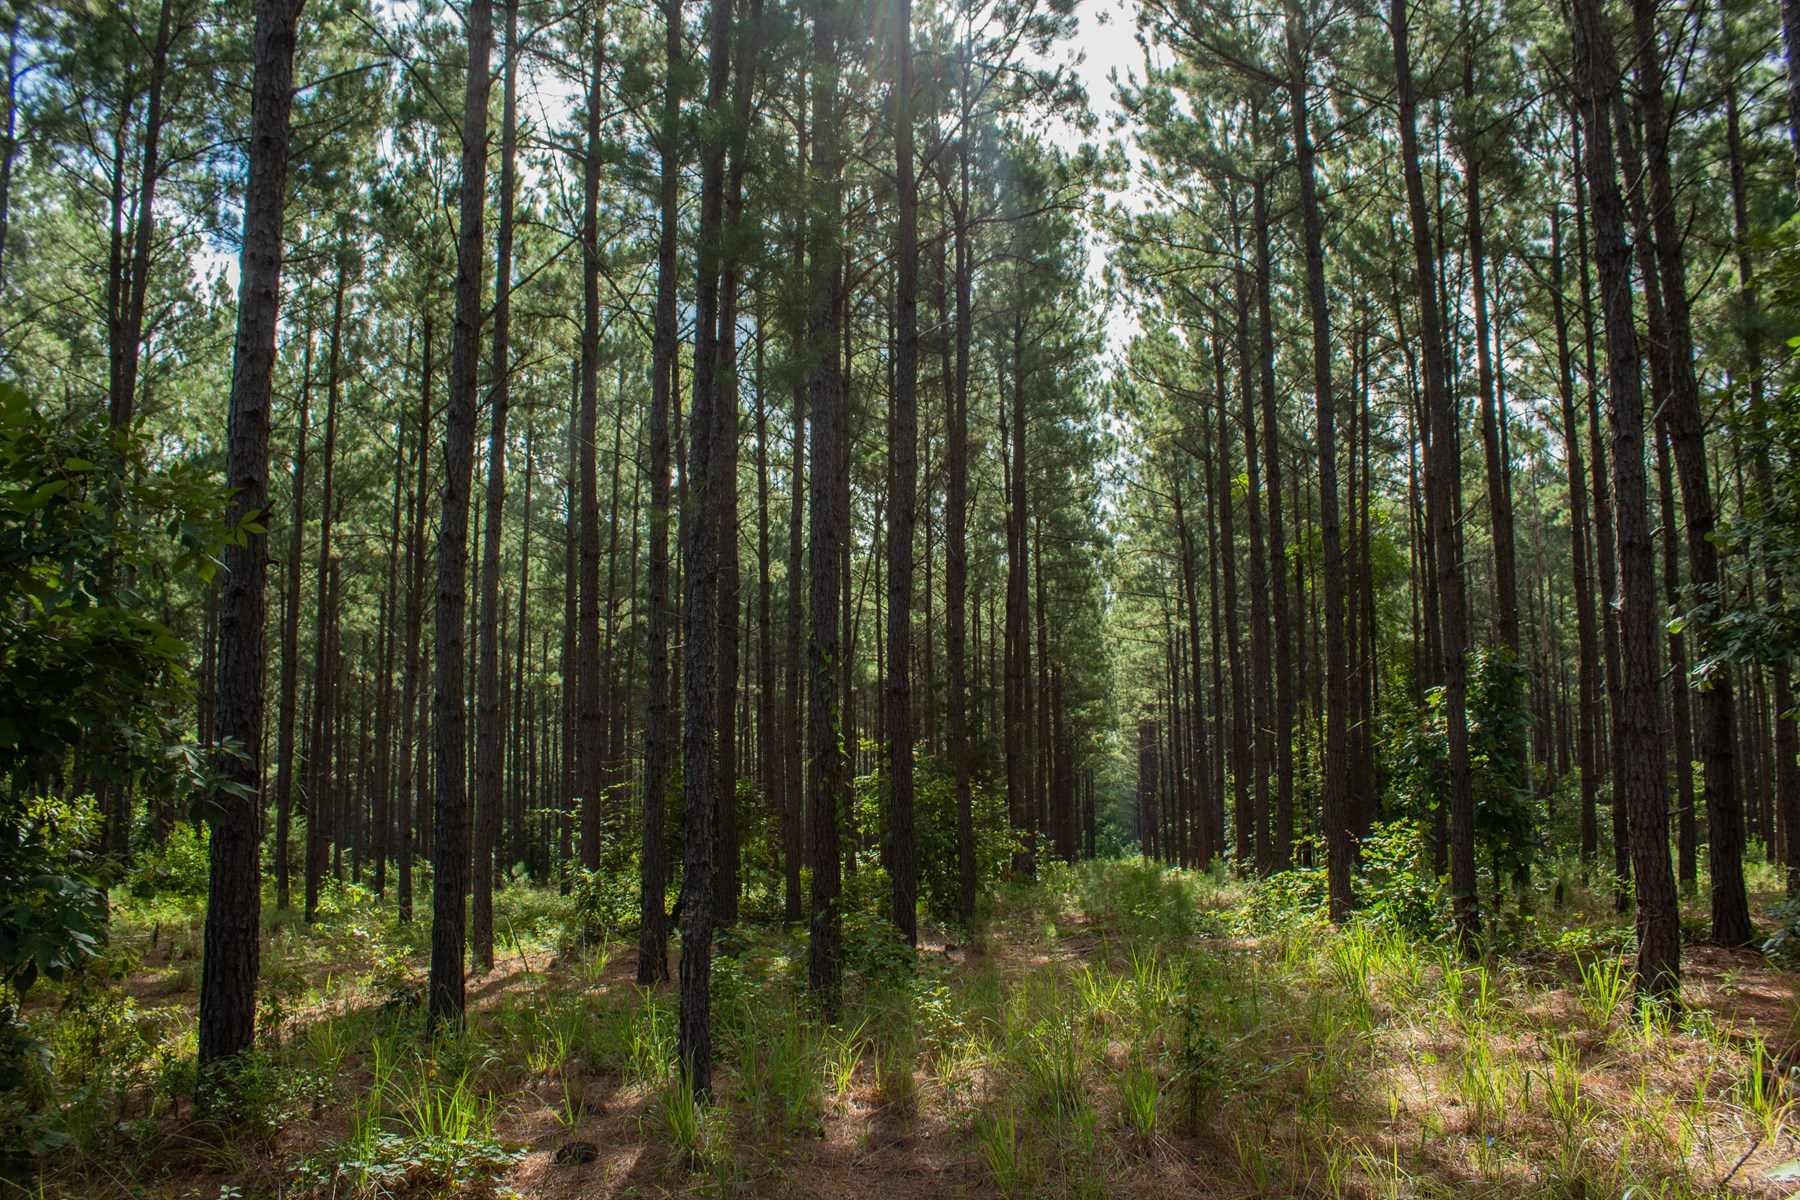 145.3 ACRES TIMBER HUNTING RECREATION LAND FOR SALE $2400/ac